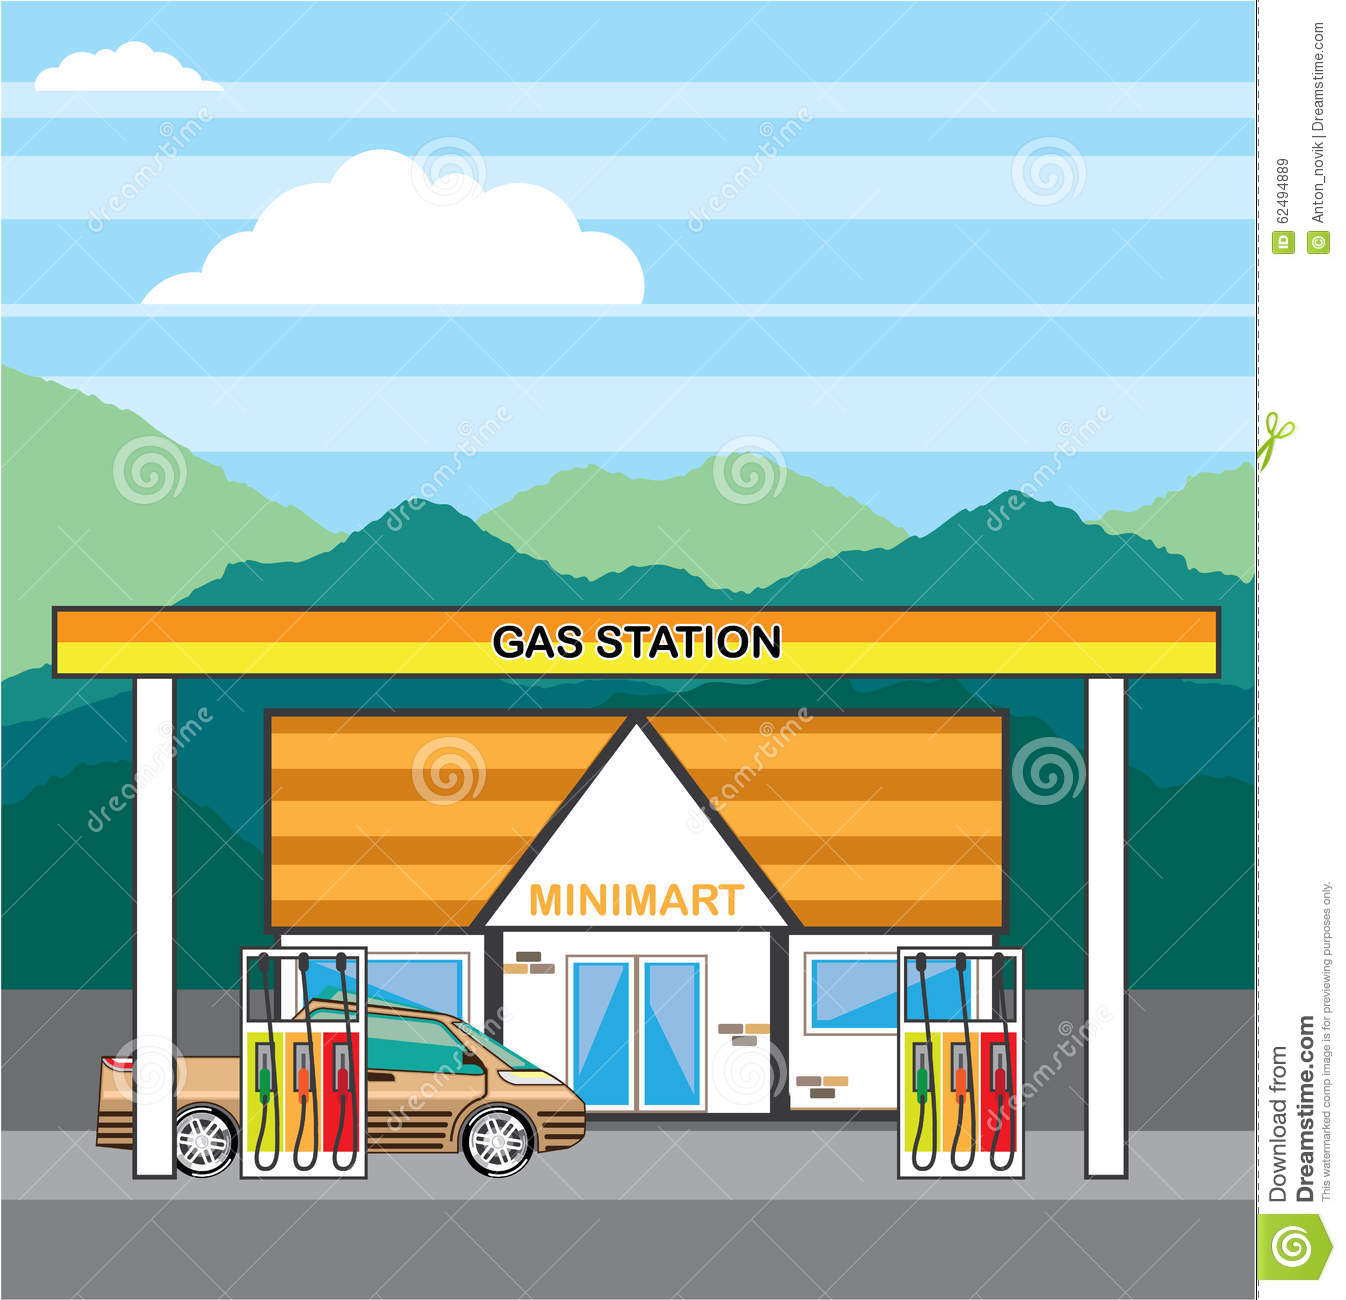 Vector Gas Station Stock Vector - Image: 62494889